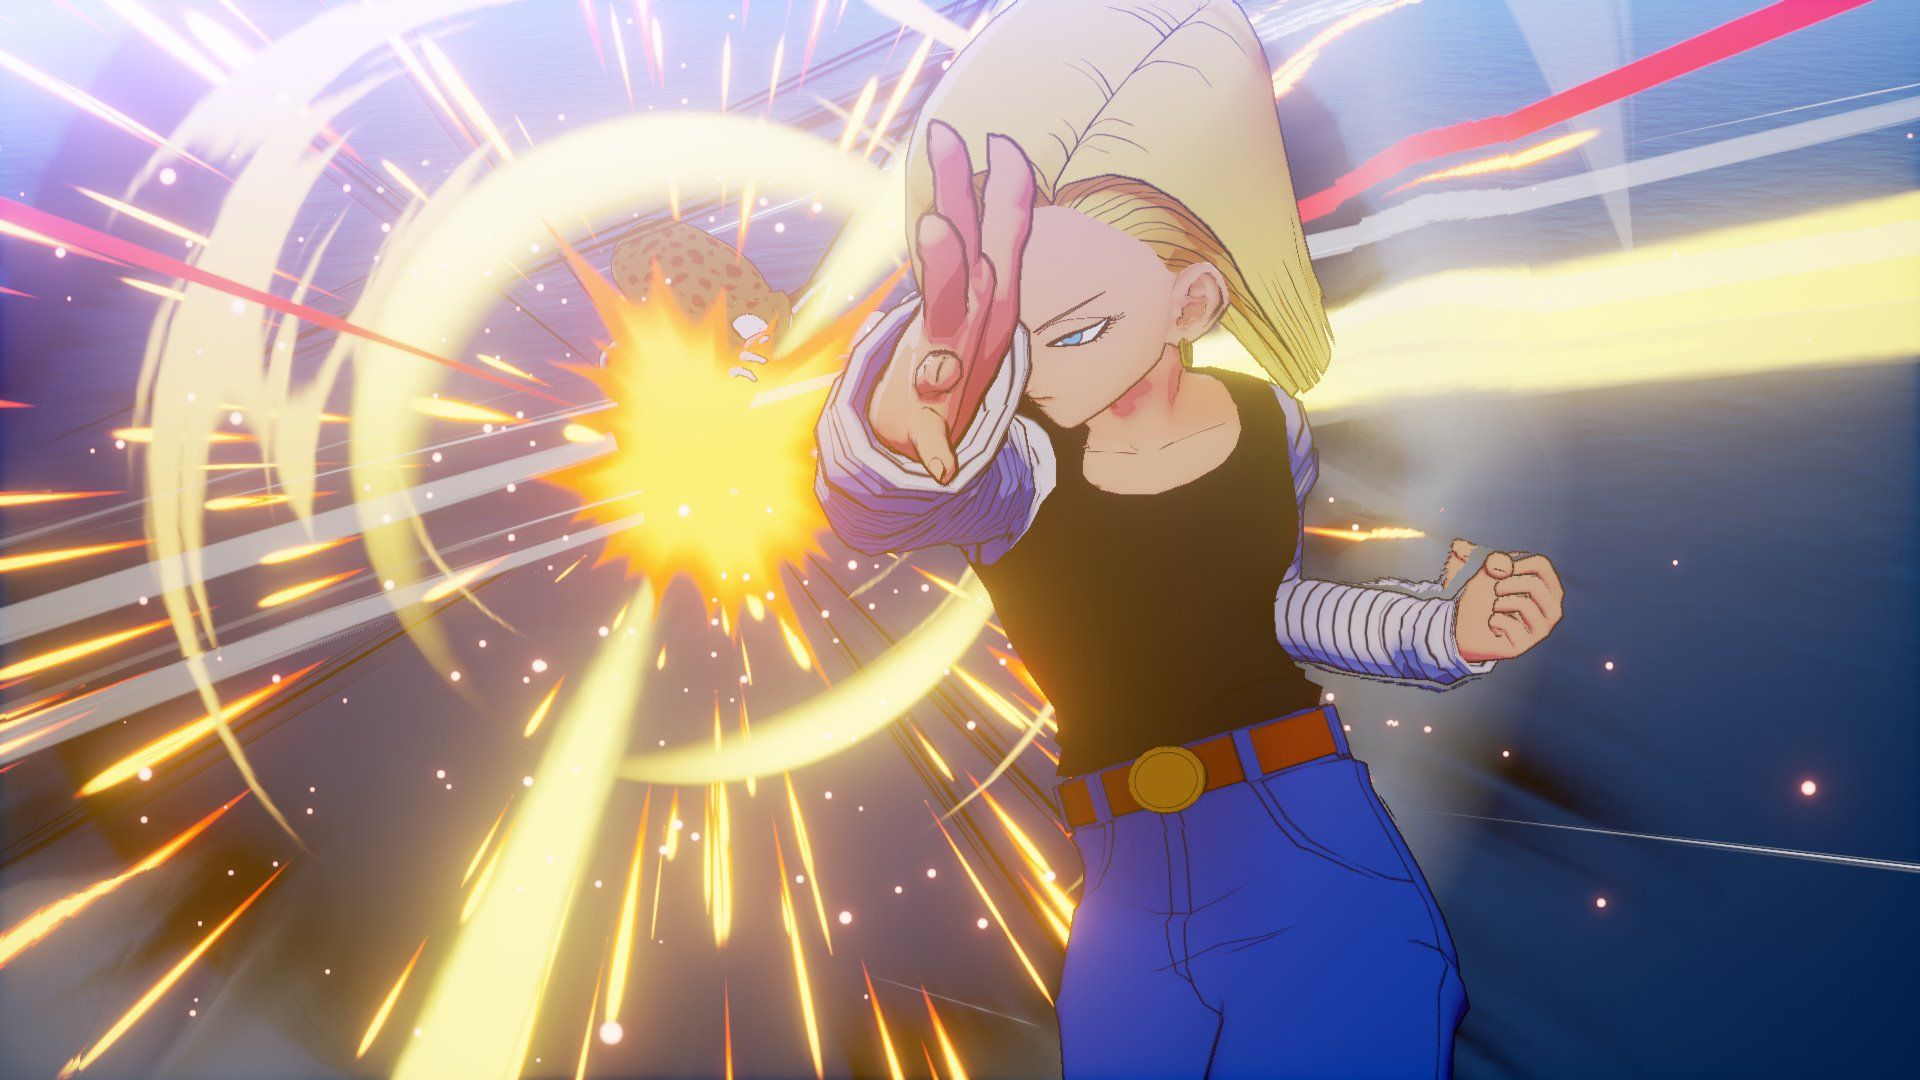 New Screenshots For Dragon Ball Z Kakarot Show Off Android 18 Trunks More Https Nichegamer Com 2019 12 27 New Screenshot Dragon Ball Dragon Ball Z Kakarot